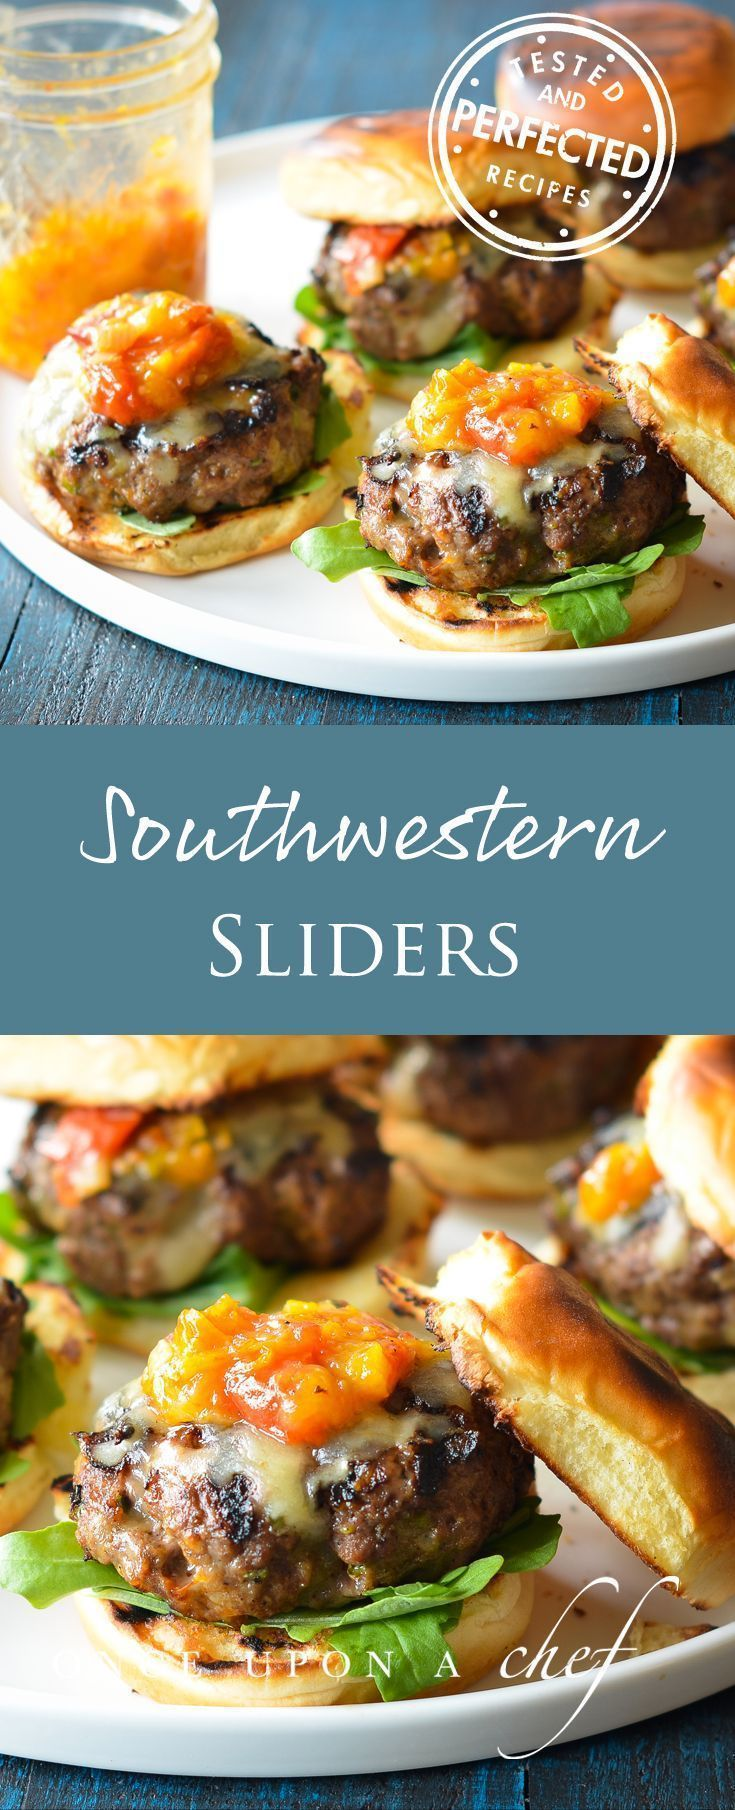 If you�re a fan of Juicy Steakhouse Burgers, you�ll love these drip-down-your-chin sliders jazzed up with smoky Southwestern spices, jalape�o pepper and Jack cheese. They are phenomenal topped with Roasted Tomato Peach Jam, which is more of a tangy-sweet